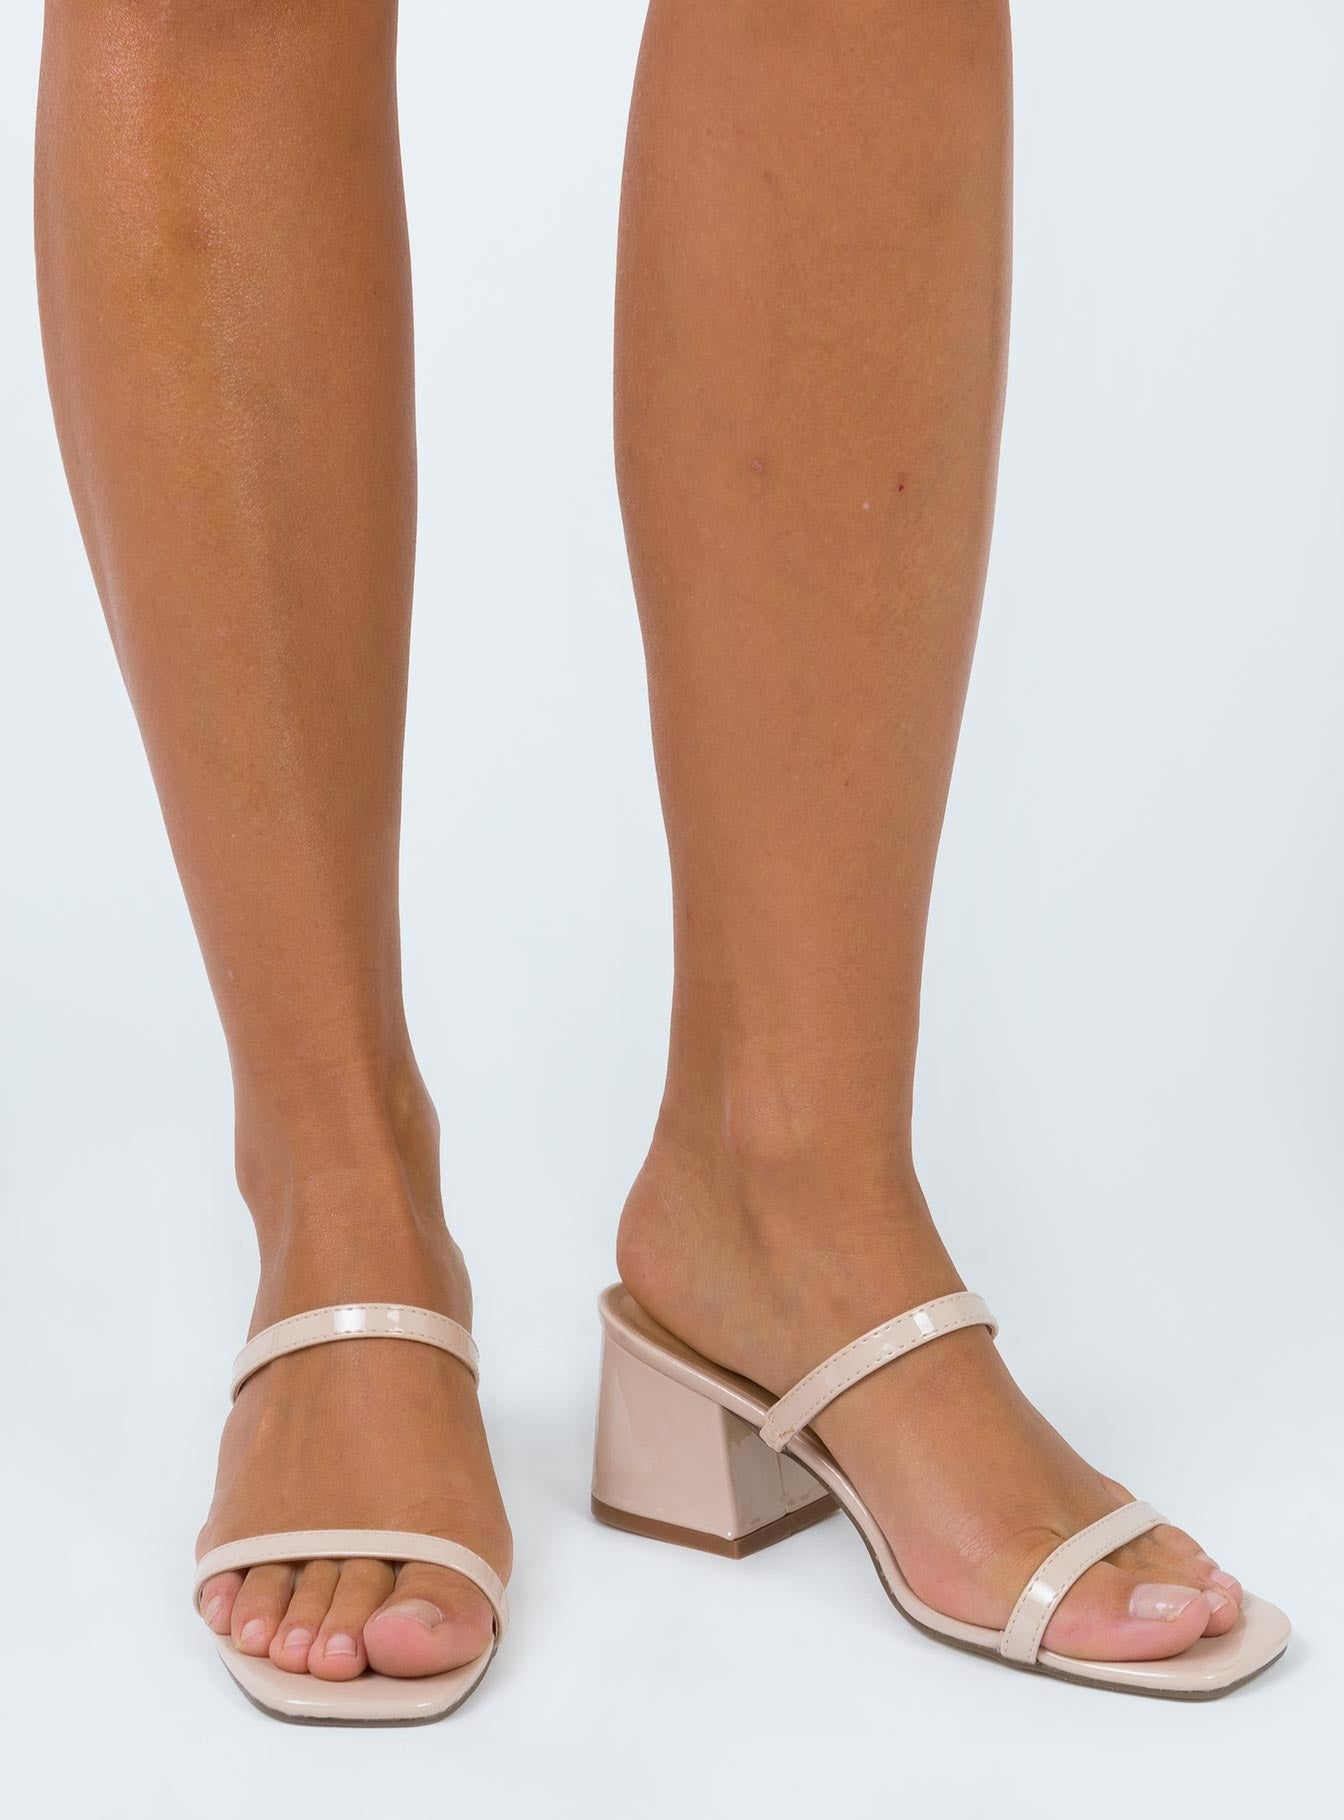 Therapy Goldie Heels Nude Patent